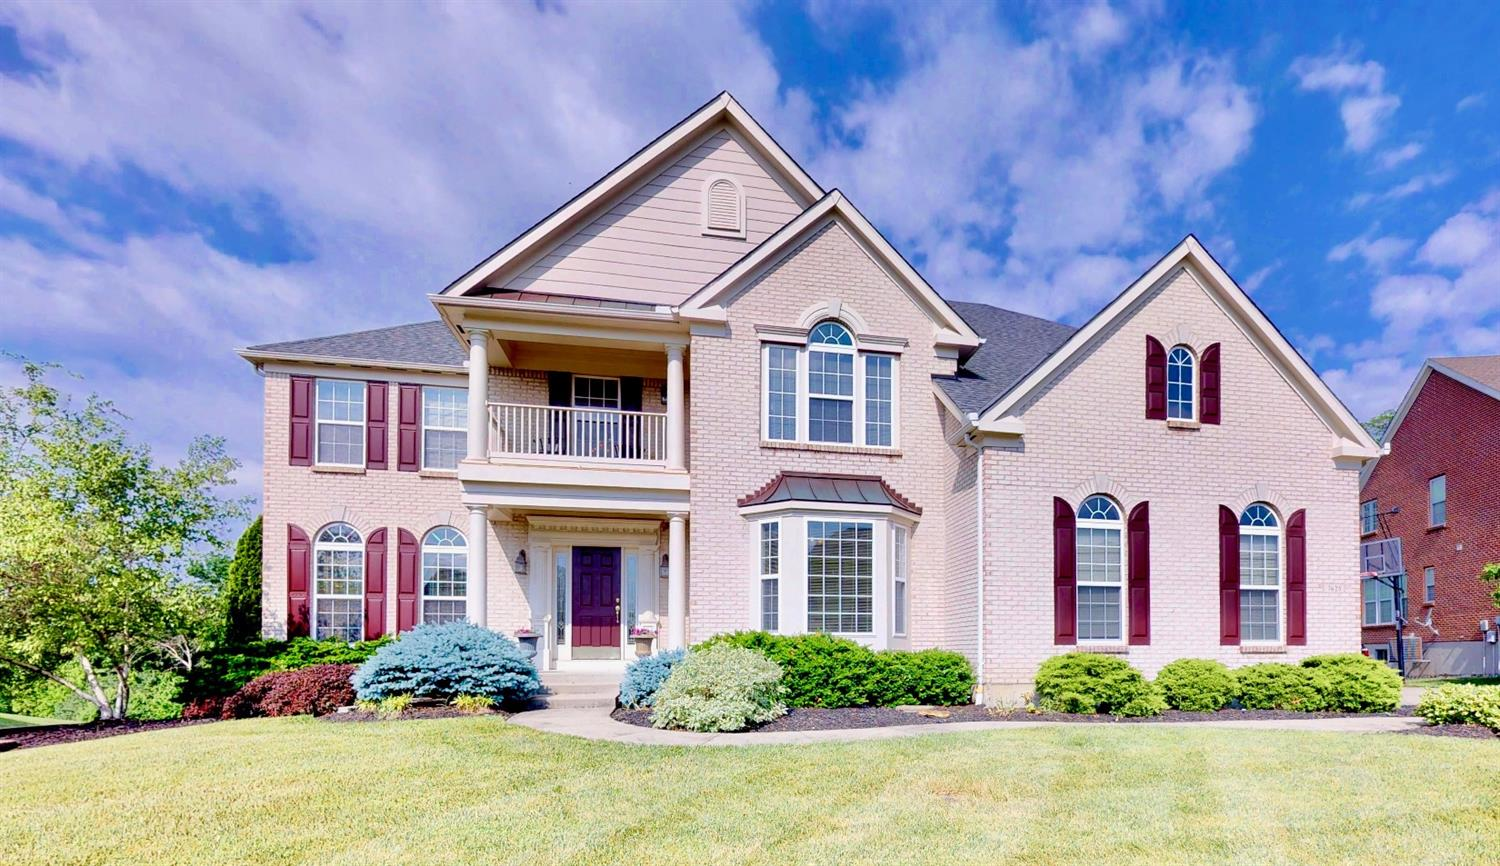 7625 Foxchase Dr West Chester - West, OH